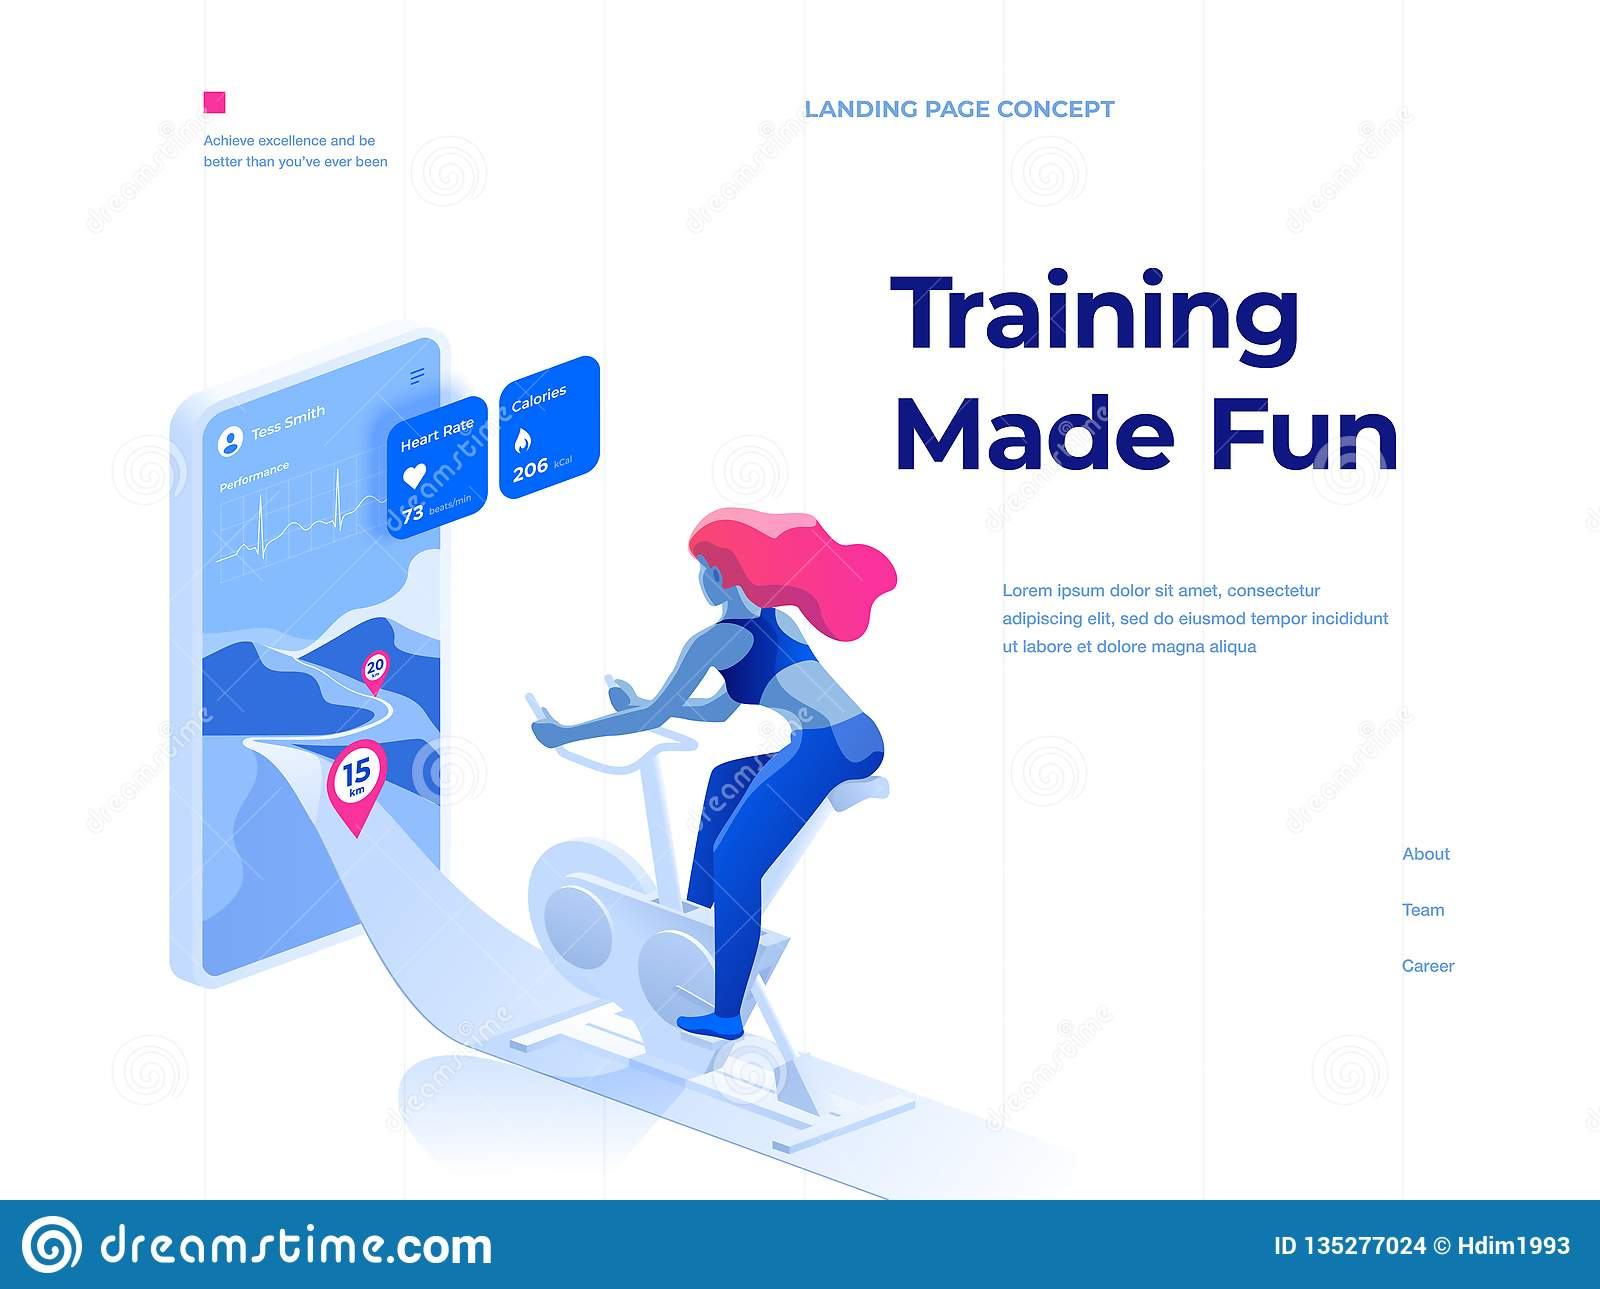 A woman doing a workout on a bike-trainer and using a mobile application to watch out her performance. Landing page concept.